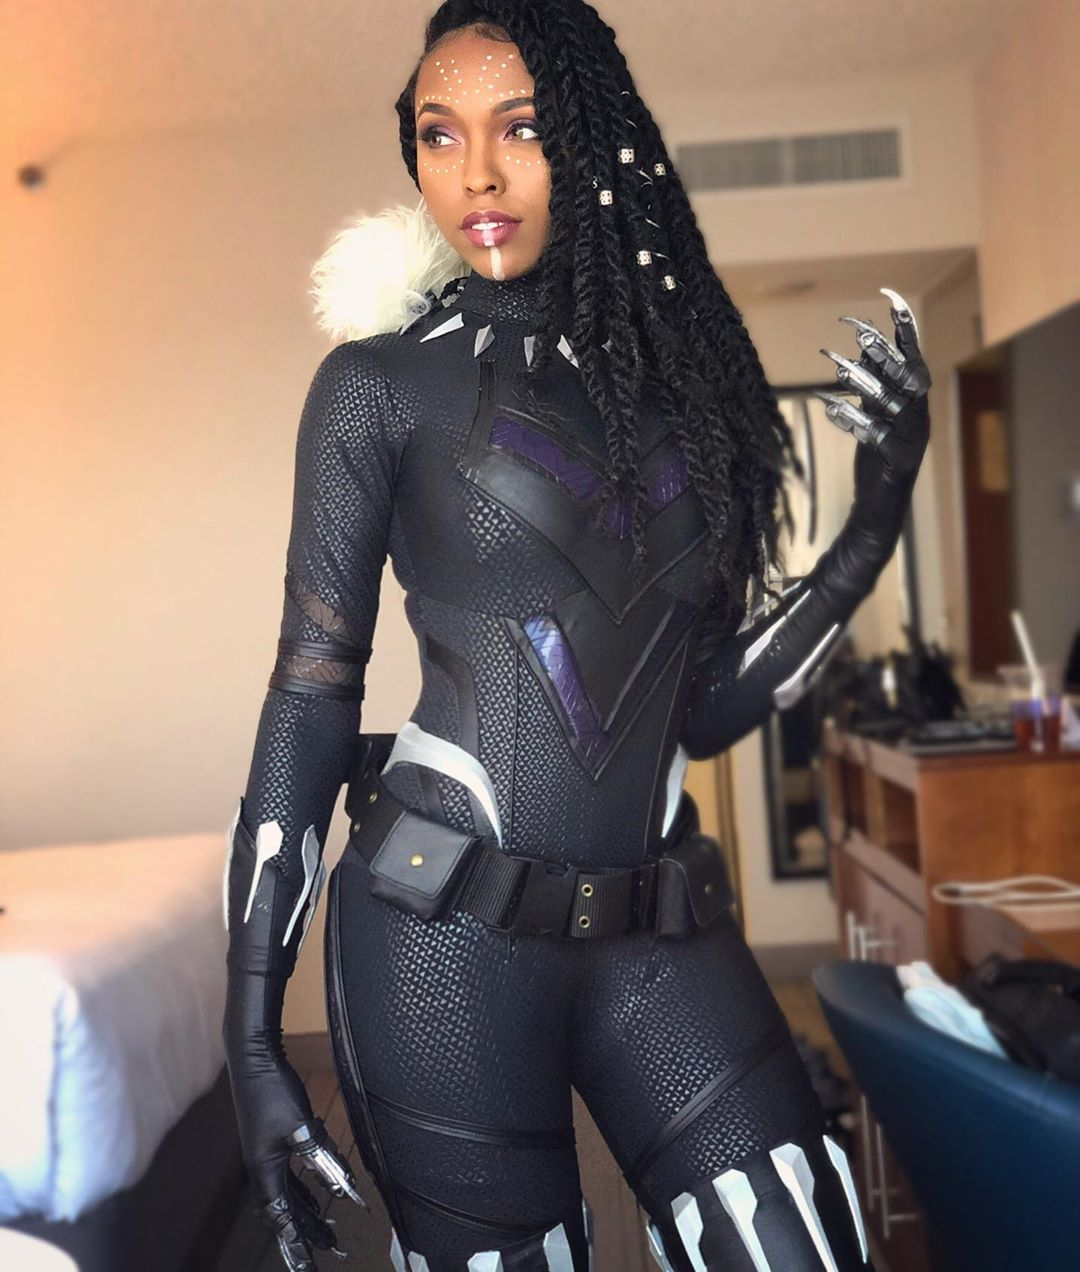 blackpanther cosplay by CutiePieSensei